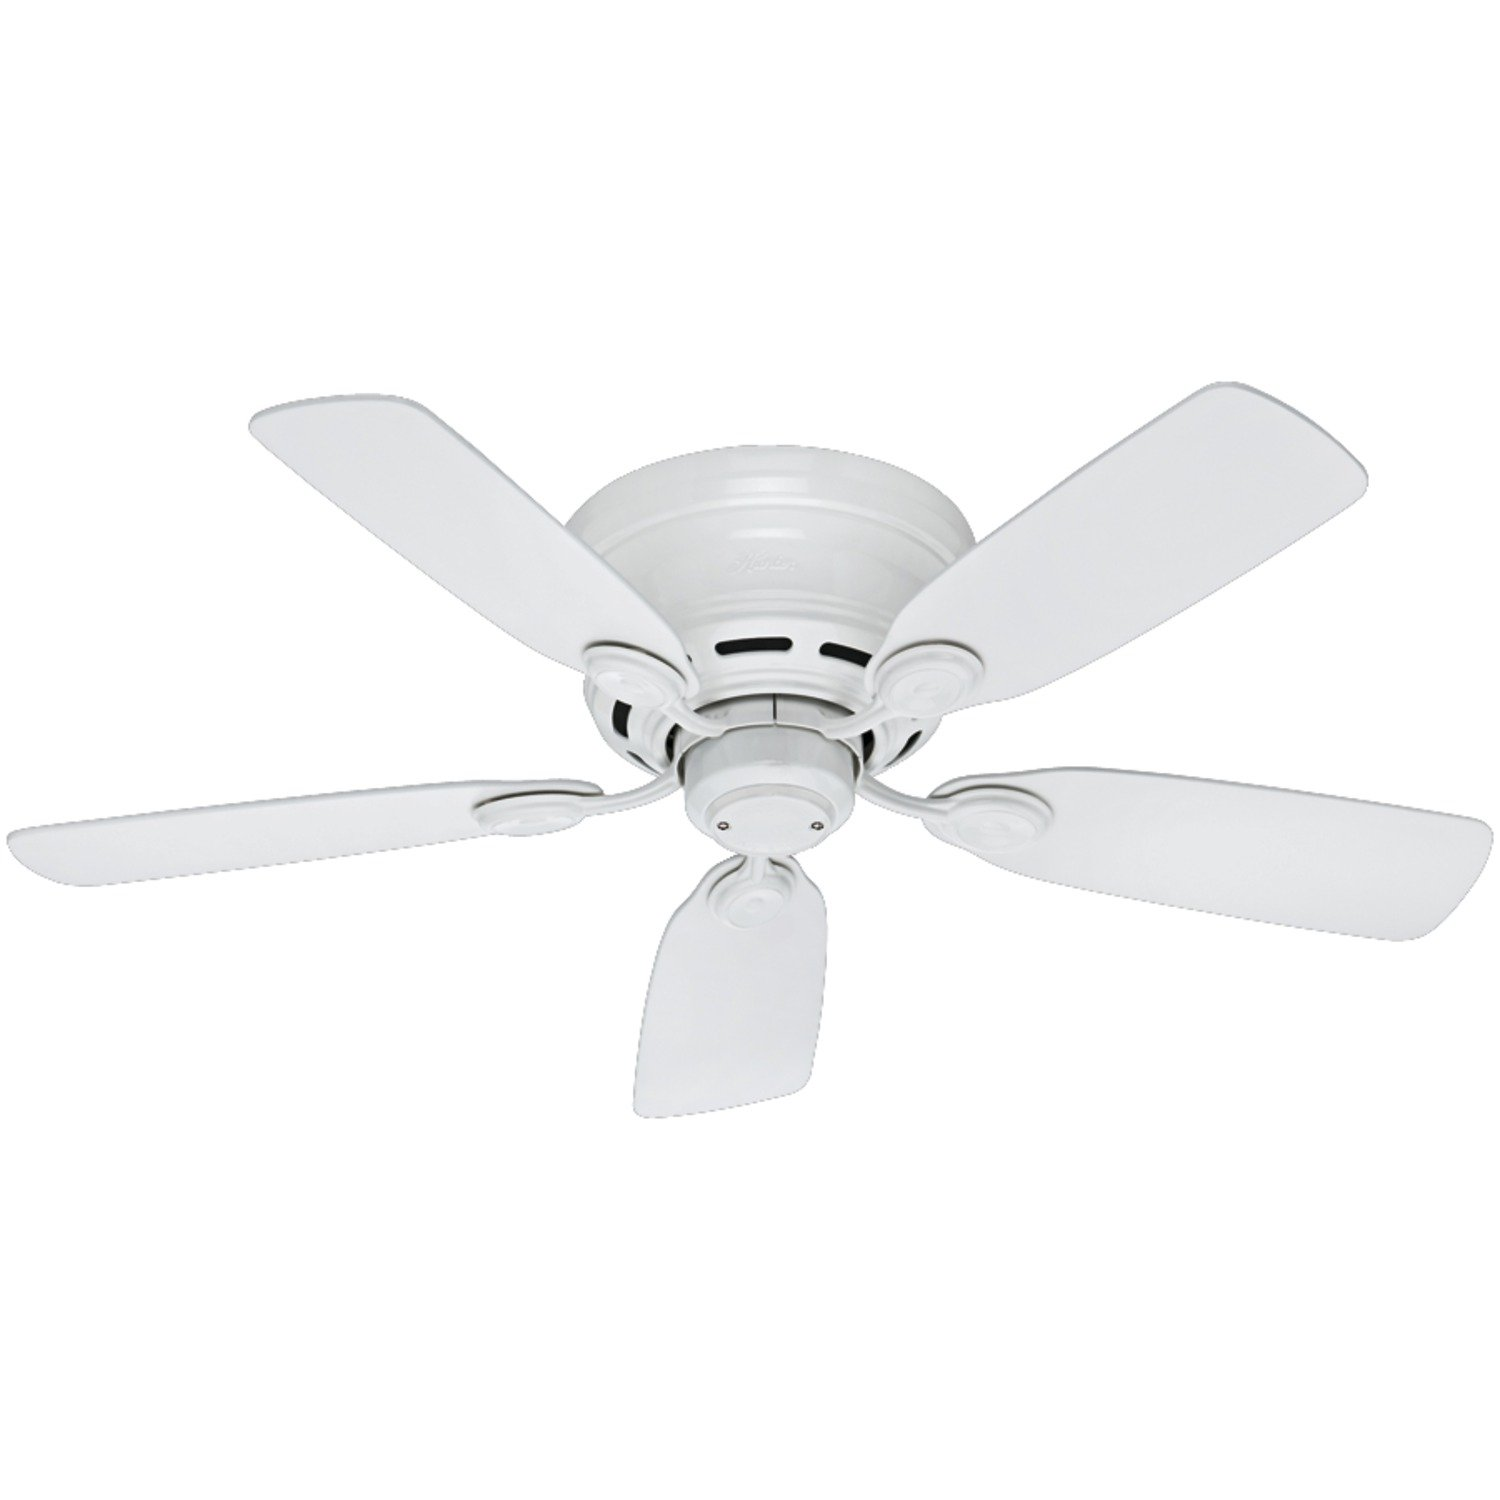 Hunter 51059 Low Profile IV 5 Blade Ceiling Fan, 42 Inch, White      Amazon.com